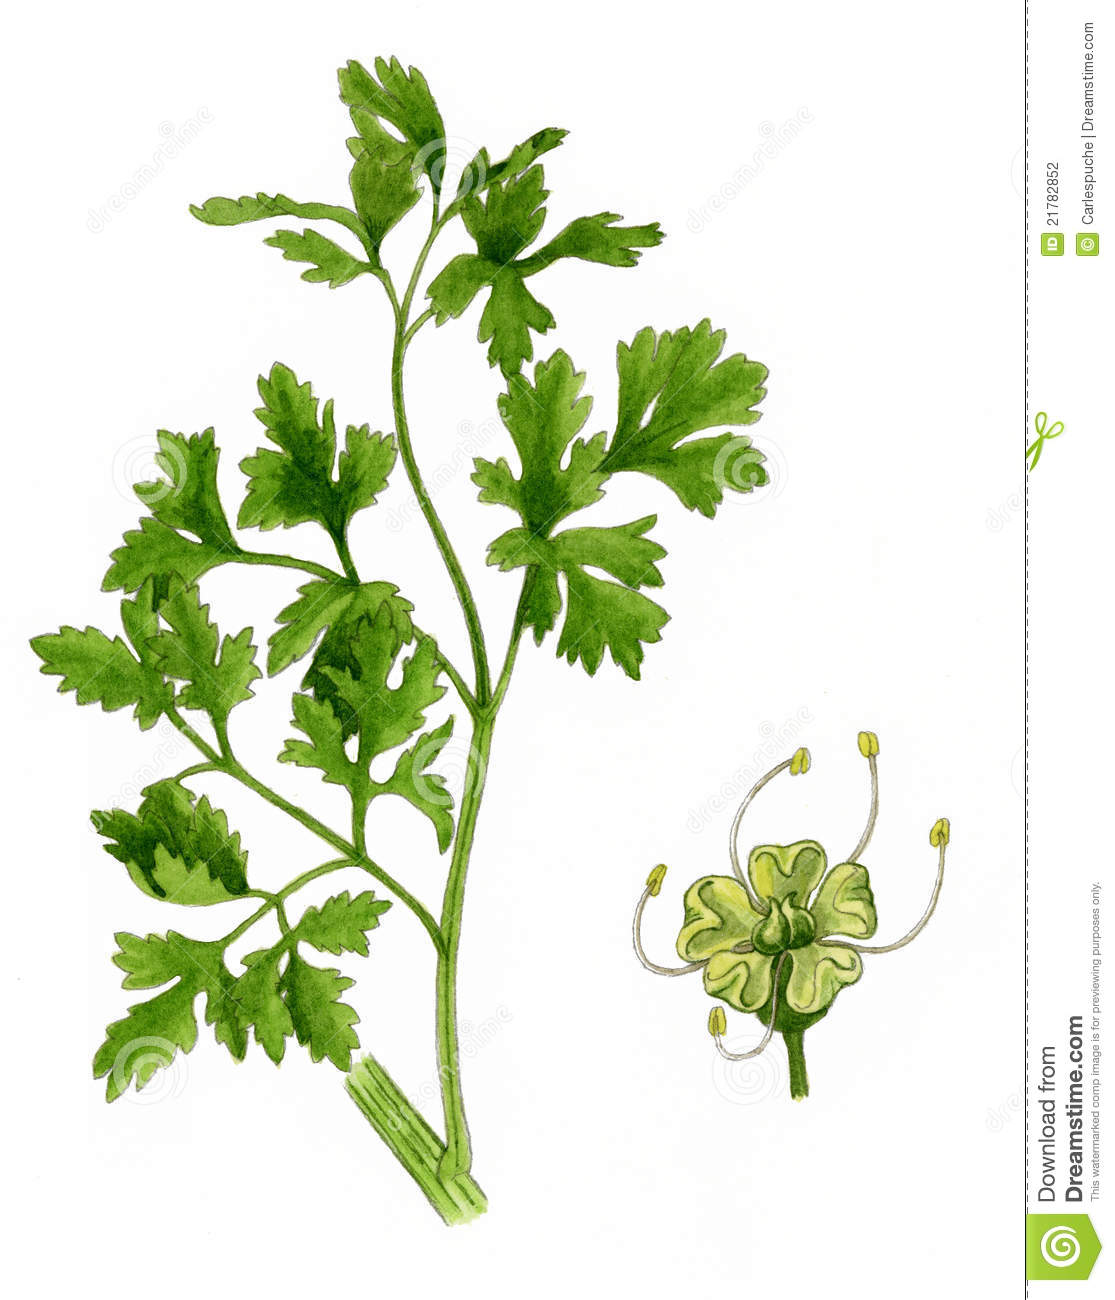 Parsley Leaves And Flower (Petroselinum Crispum) Stock Photography.